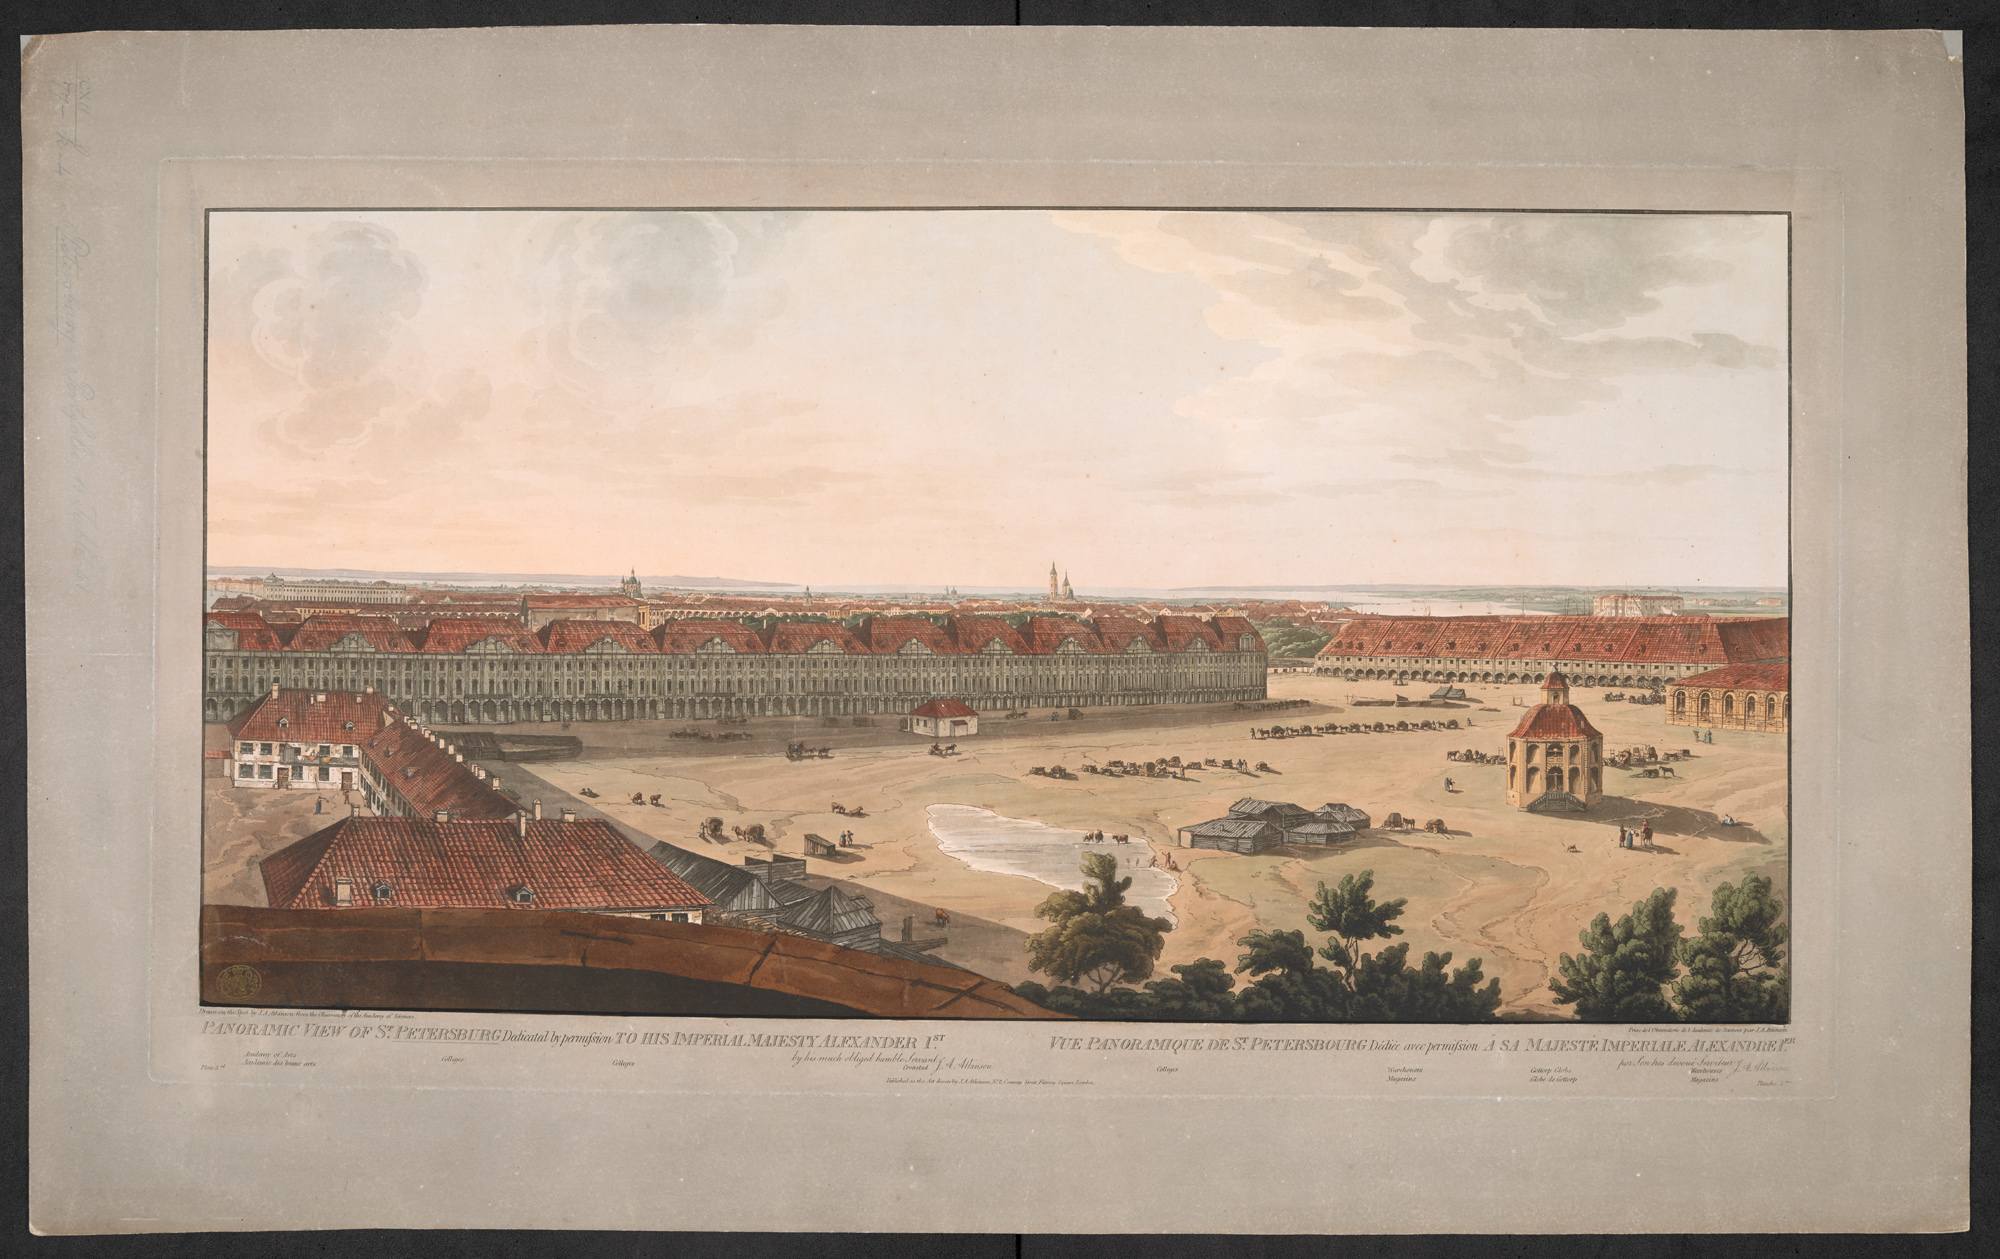 3rd of 4 plates showing a panorama of St Petersburg